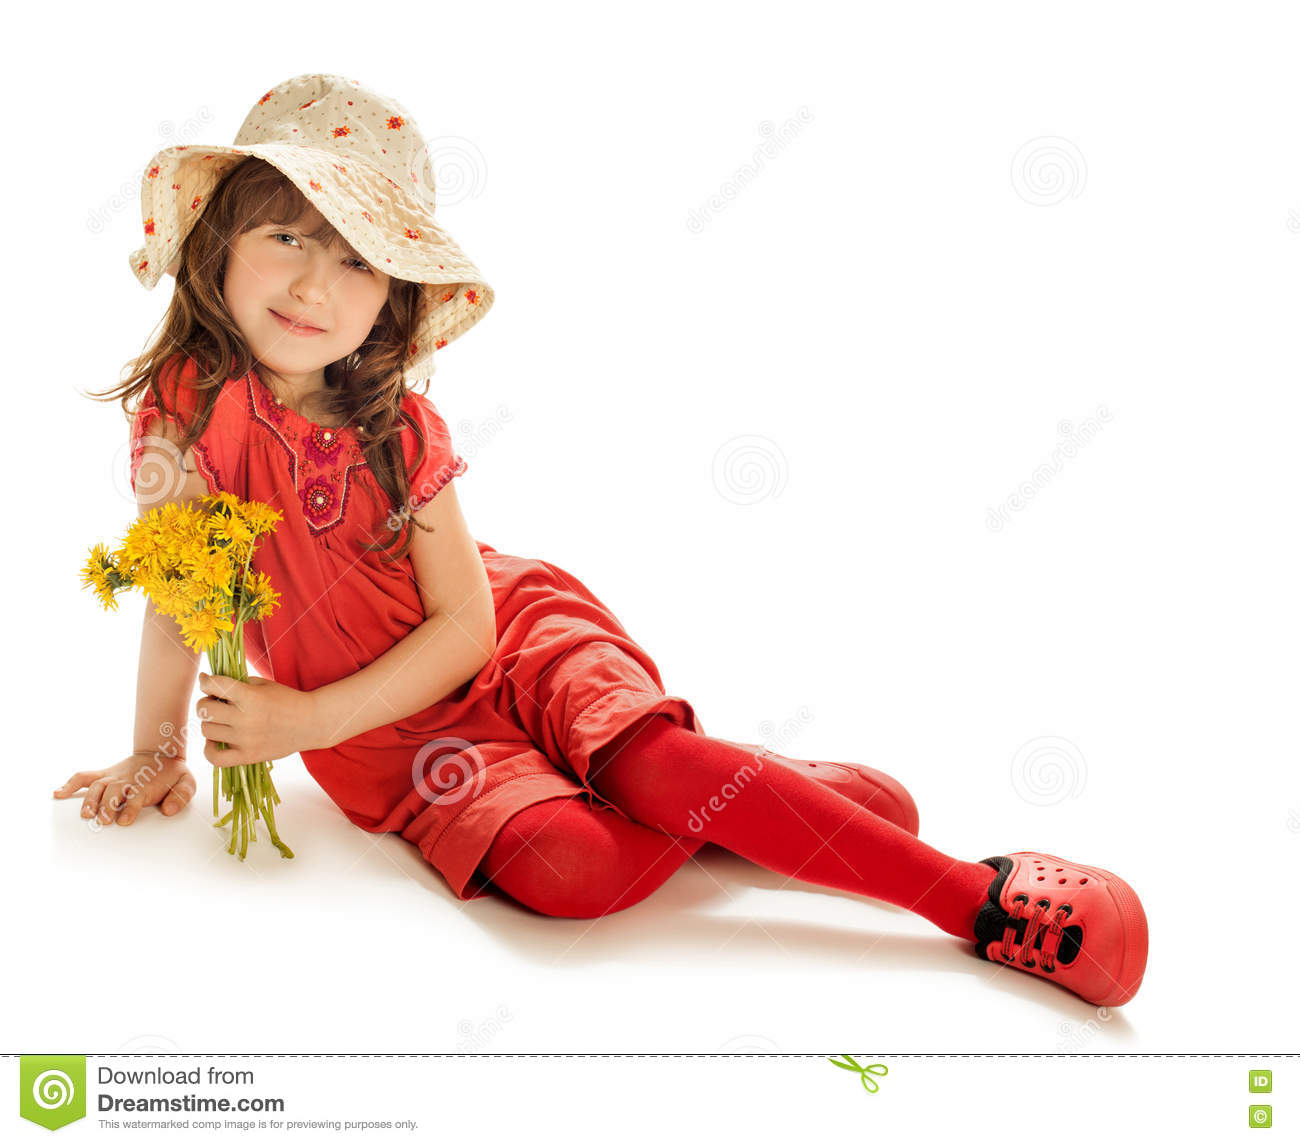 ab665246d3605 Cute little girl in a red summer dress and beach hat sitting on the floor ,  and holding a bouquet of yellow flowers , dandelions - Isolated on white ...